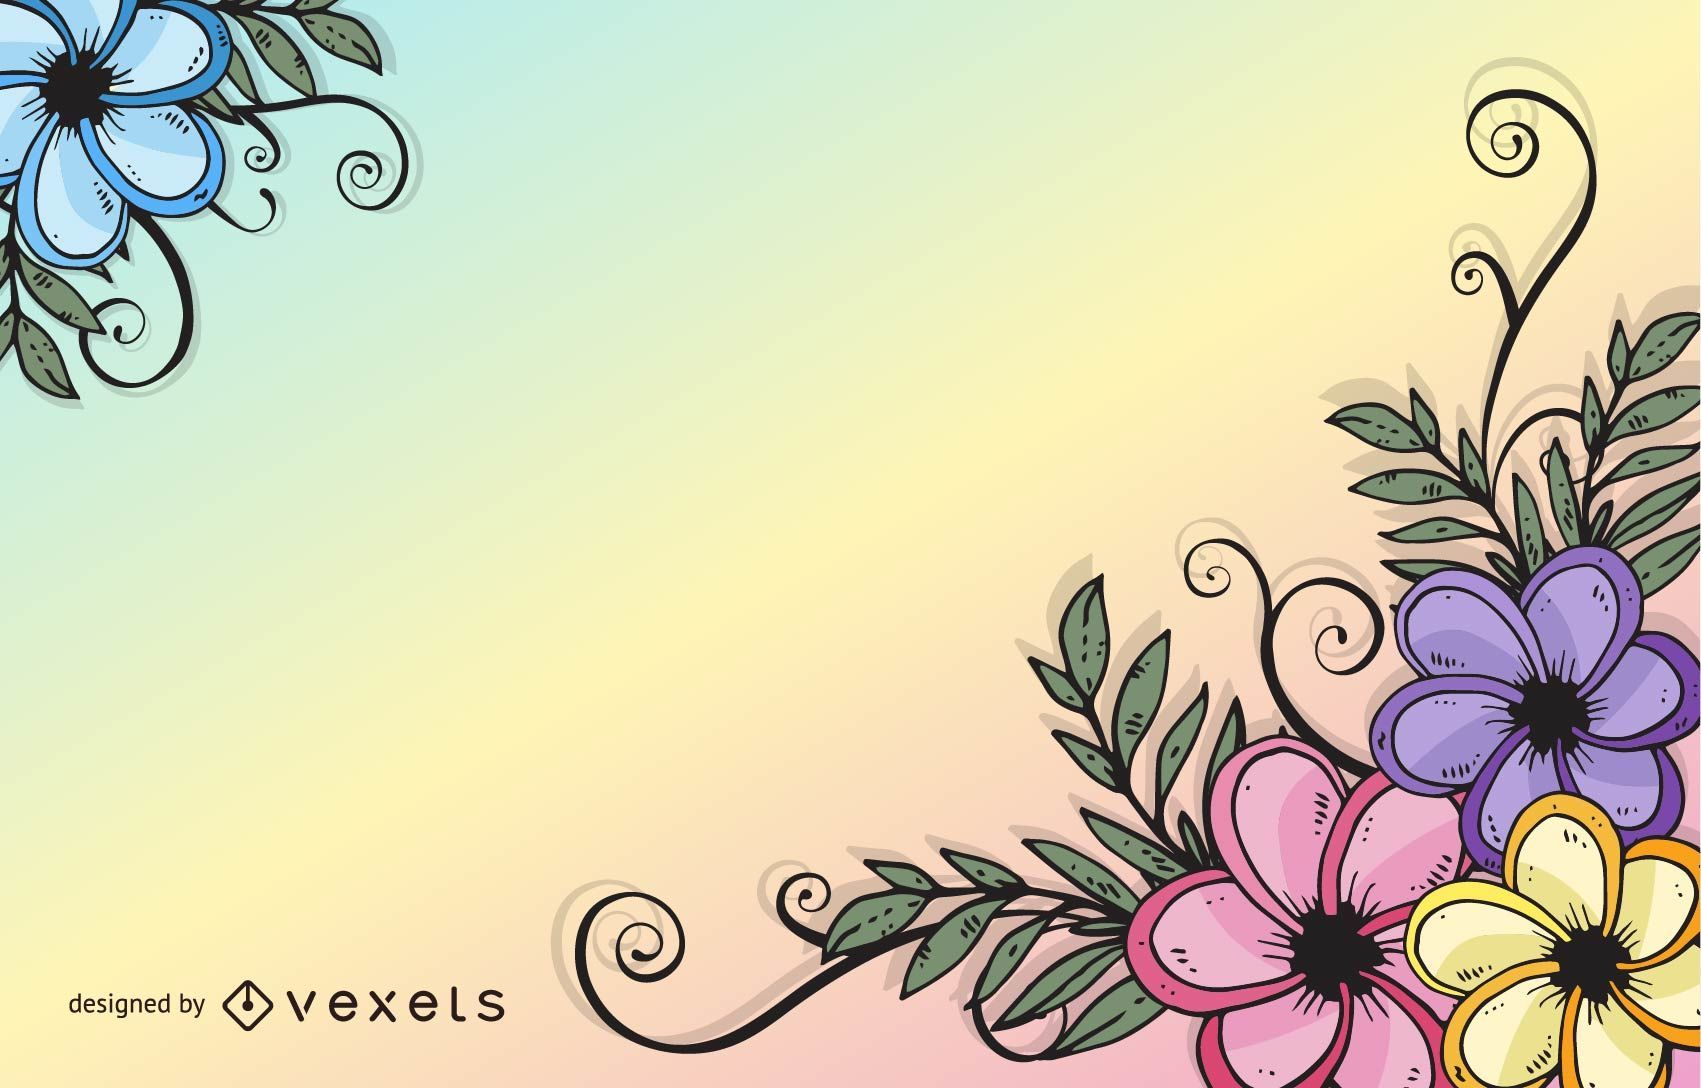 Abstract Colorful Decorative Floral Swirls Corner